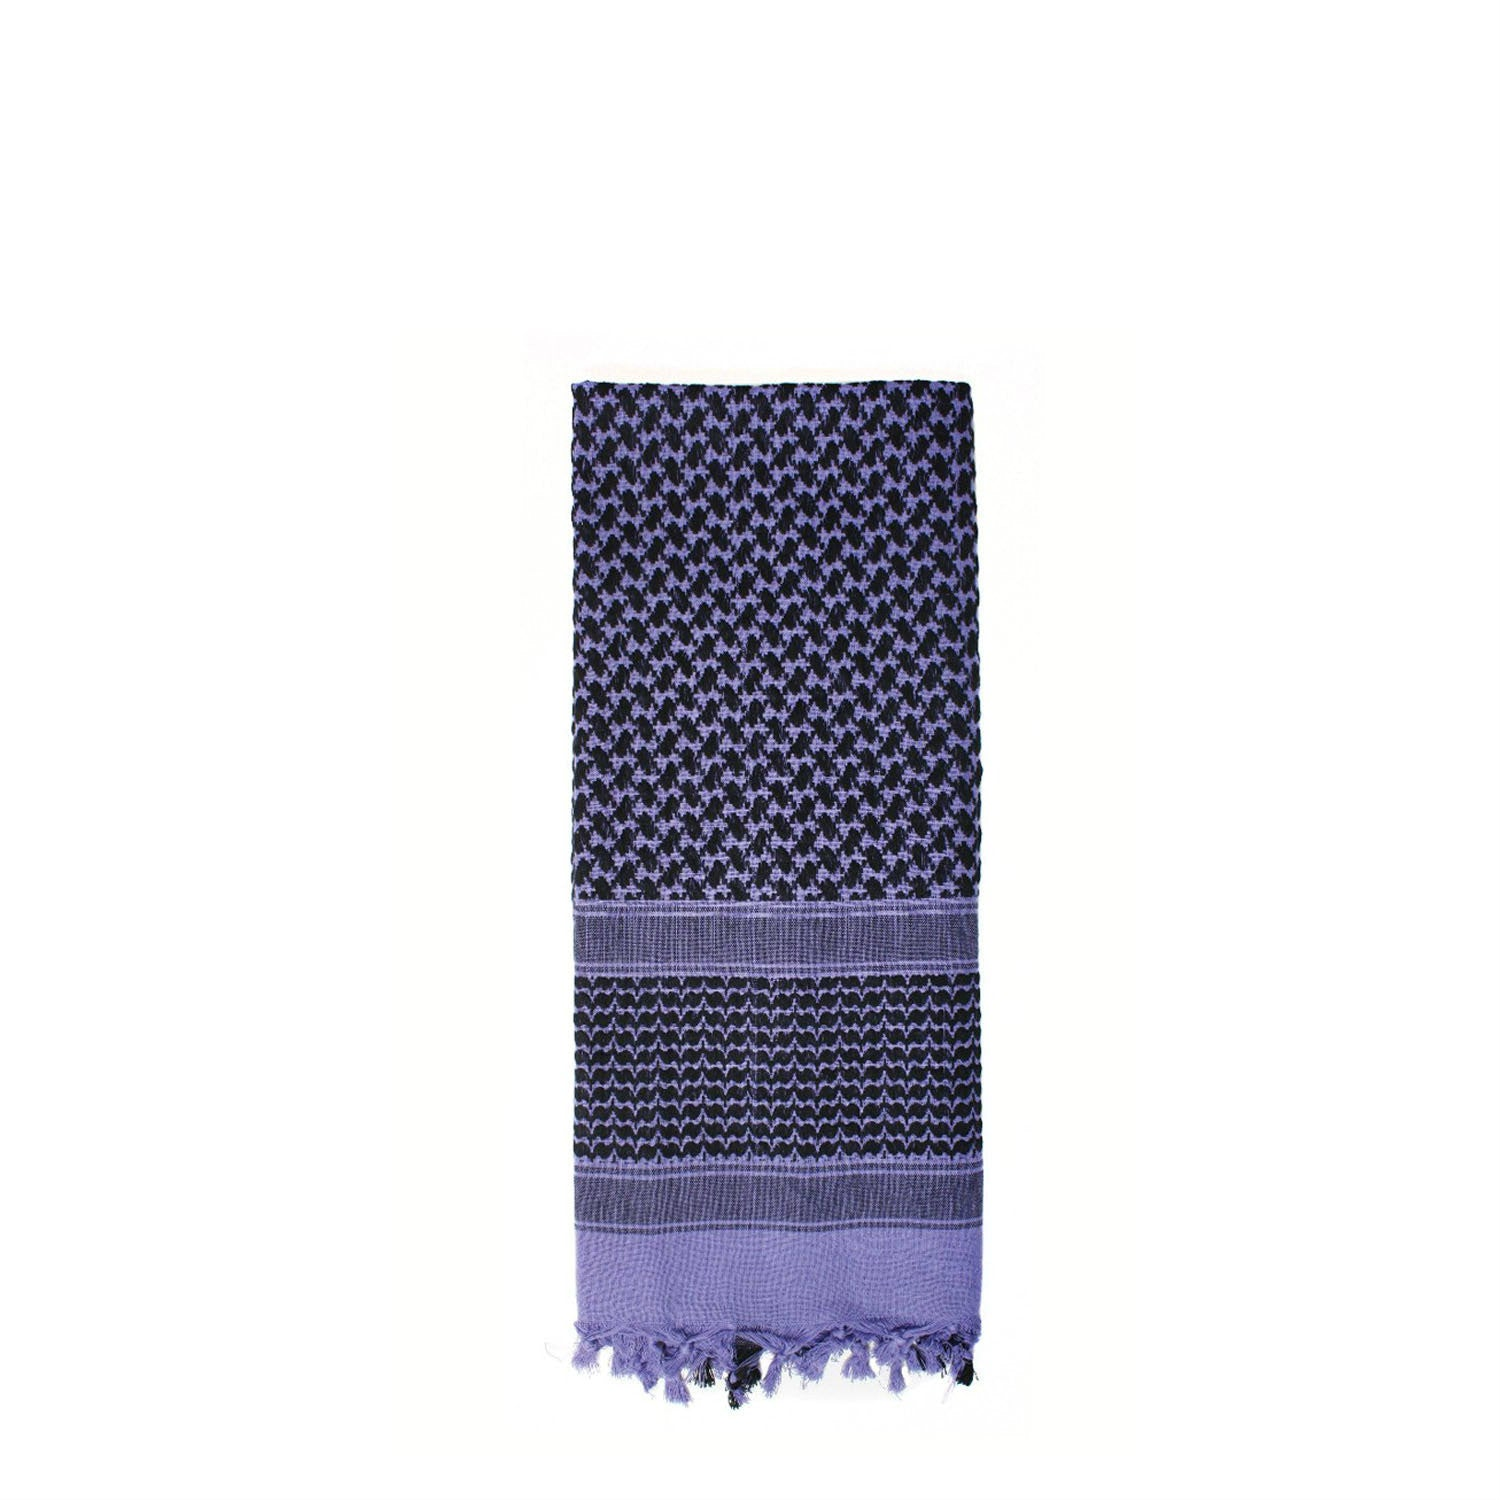 Shemagh Tactical Desert Scarf Purple / Black